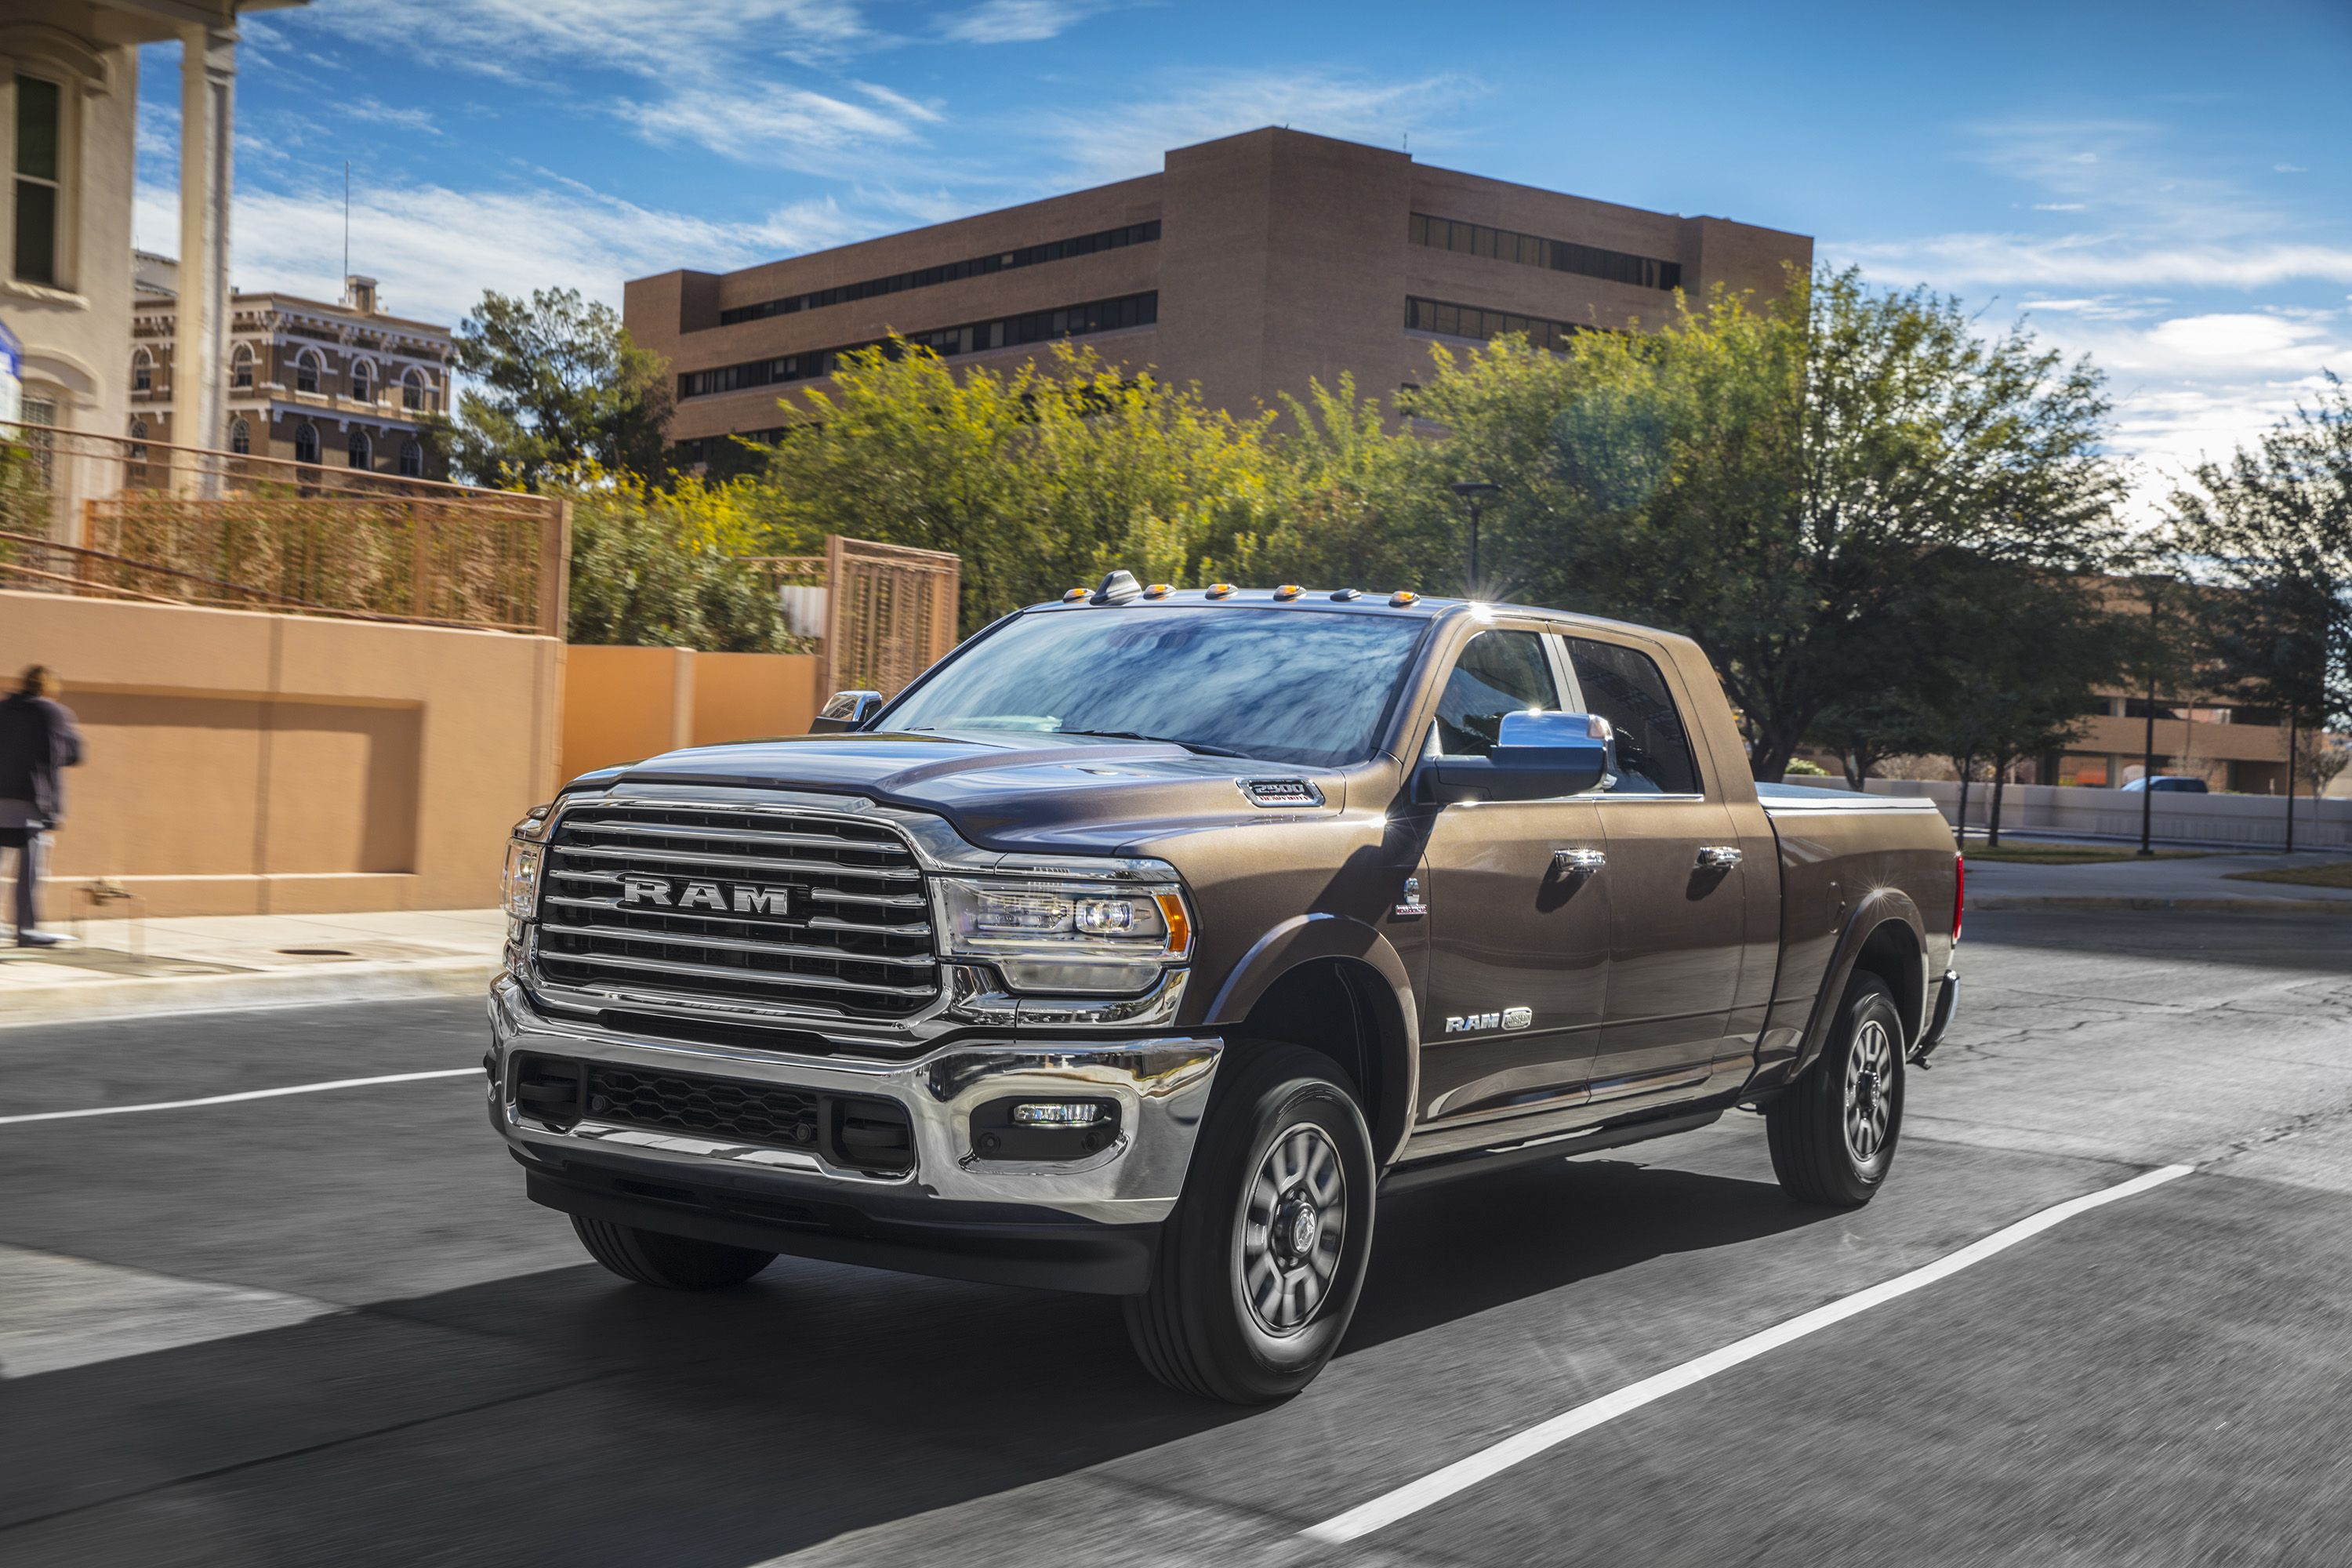 69 New 2019 Ram 2500 Diesel Review